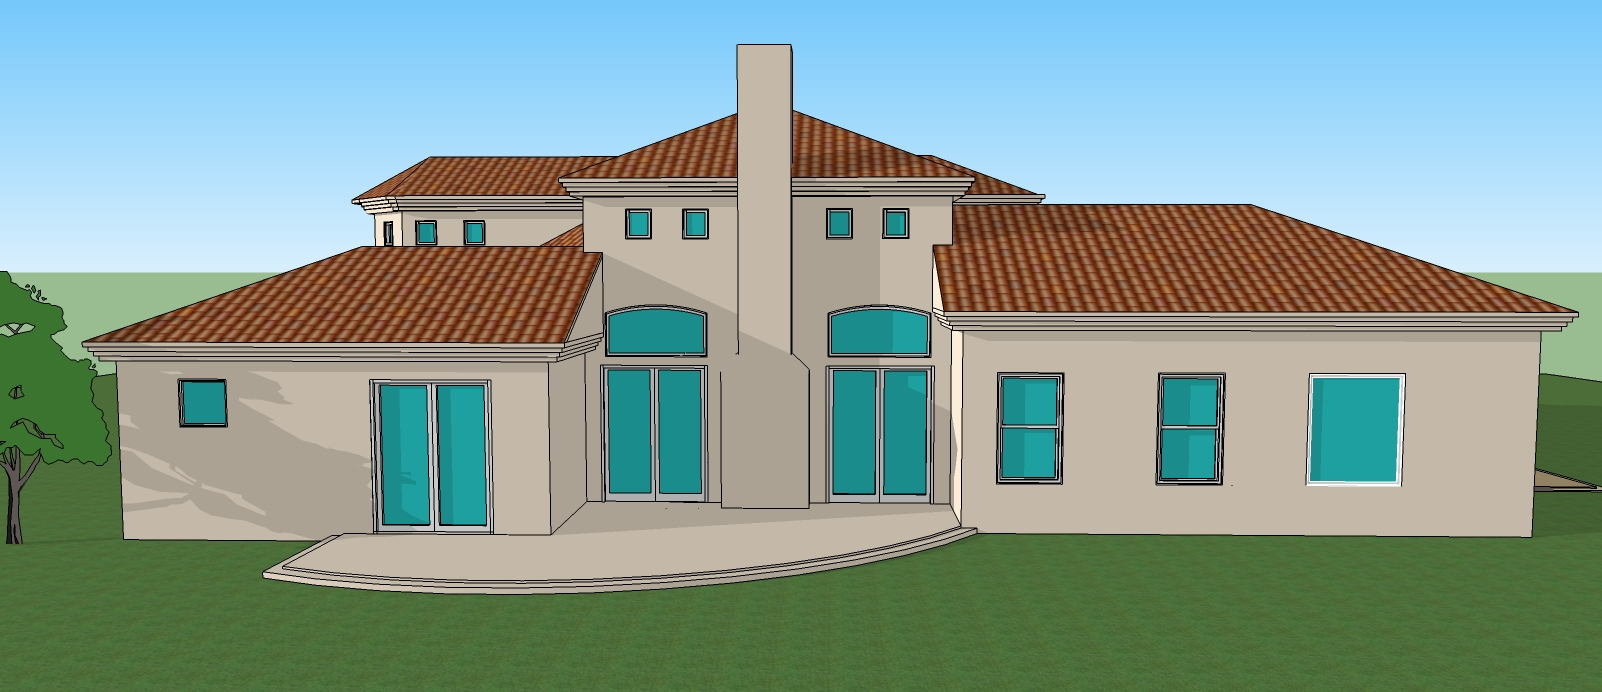 3d Cad House Plans Architect Design Sioux City Iowa Waterloo Kenosha Wisconsin Racine Pasadena Grand Prairie